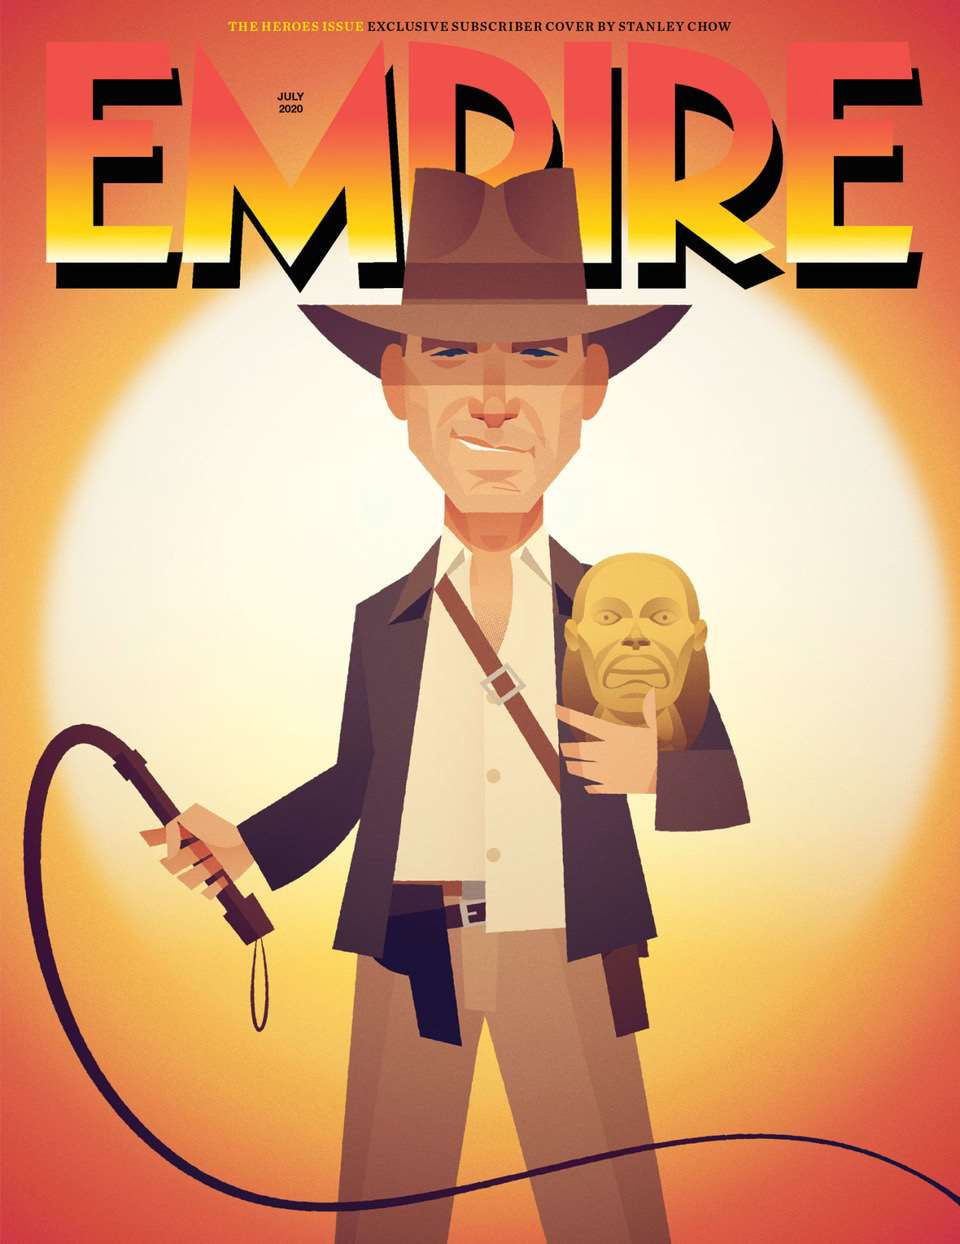 Stanley Chow, Empire Magazine The Heroes Issue Exclusive Subscriber Cover Stanley Chow.